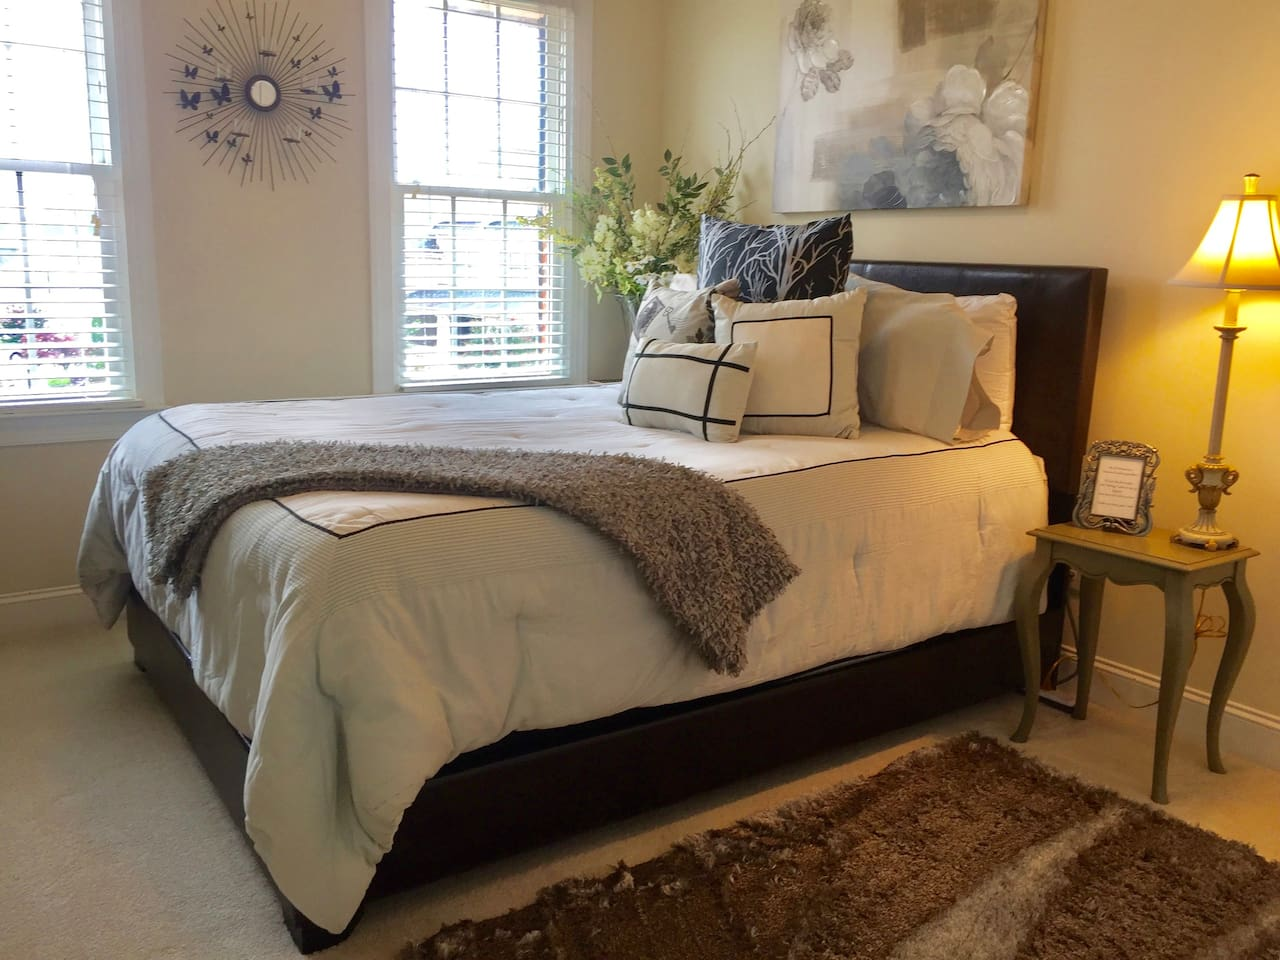 Queen-sized bed with pillow top mattress